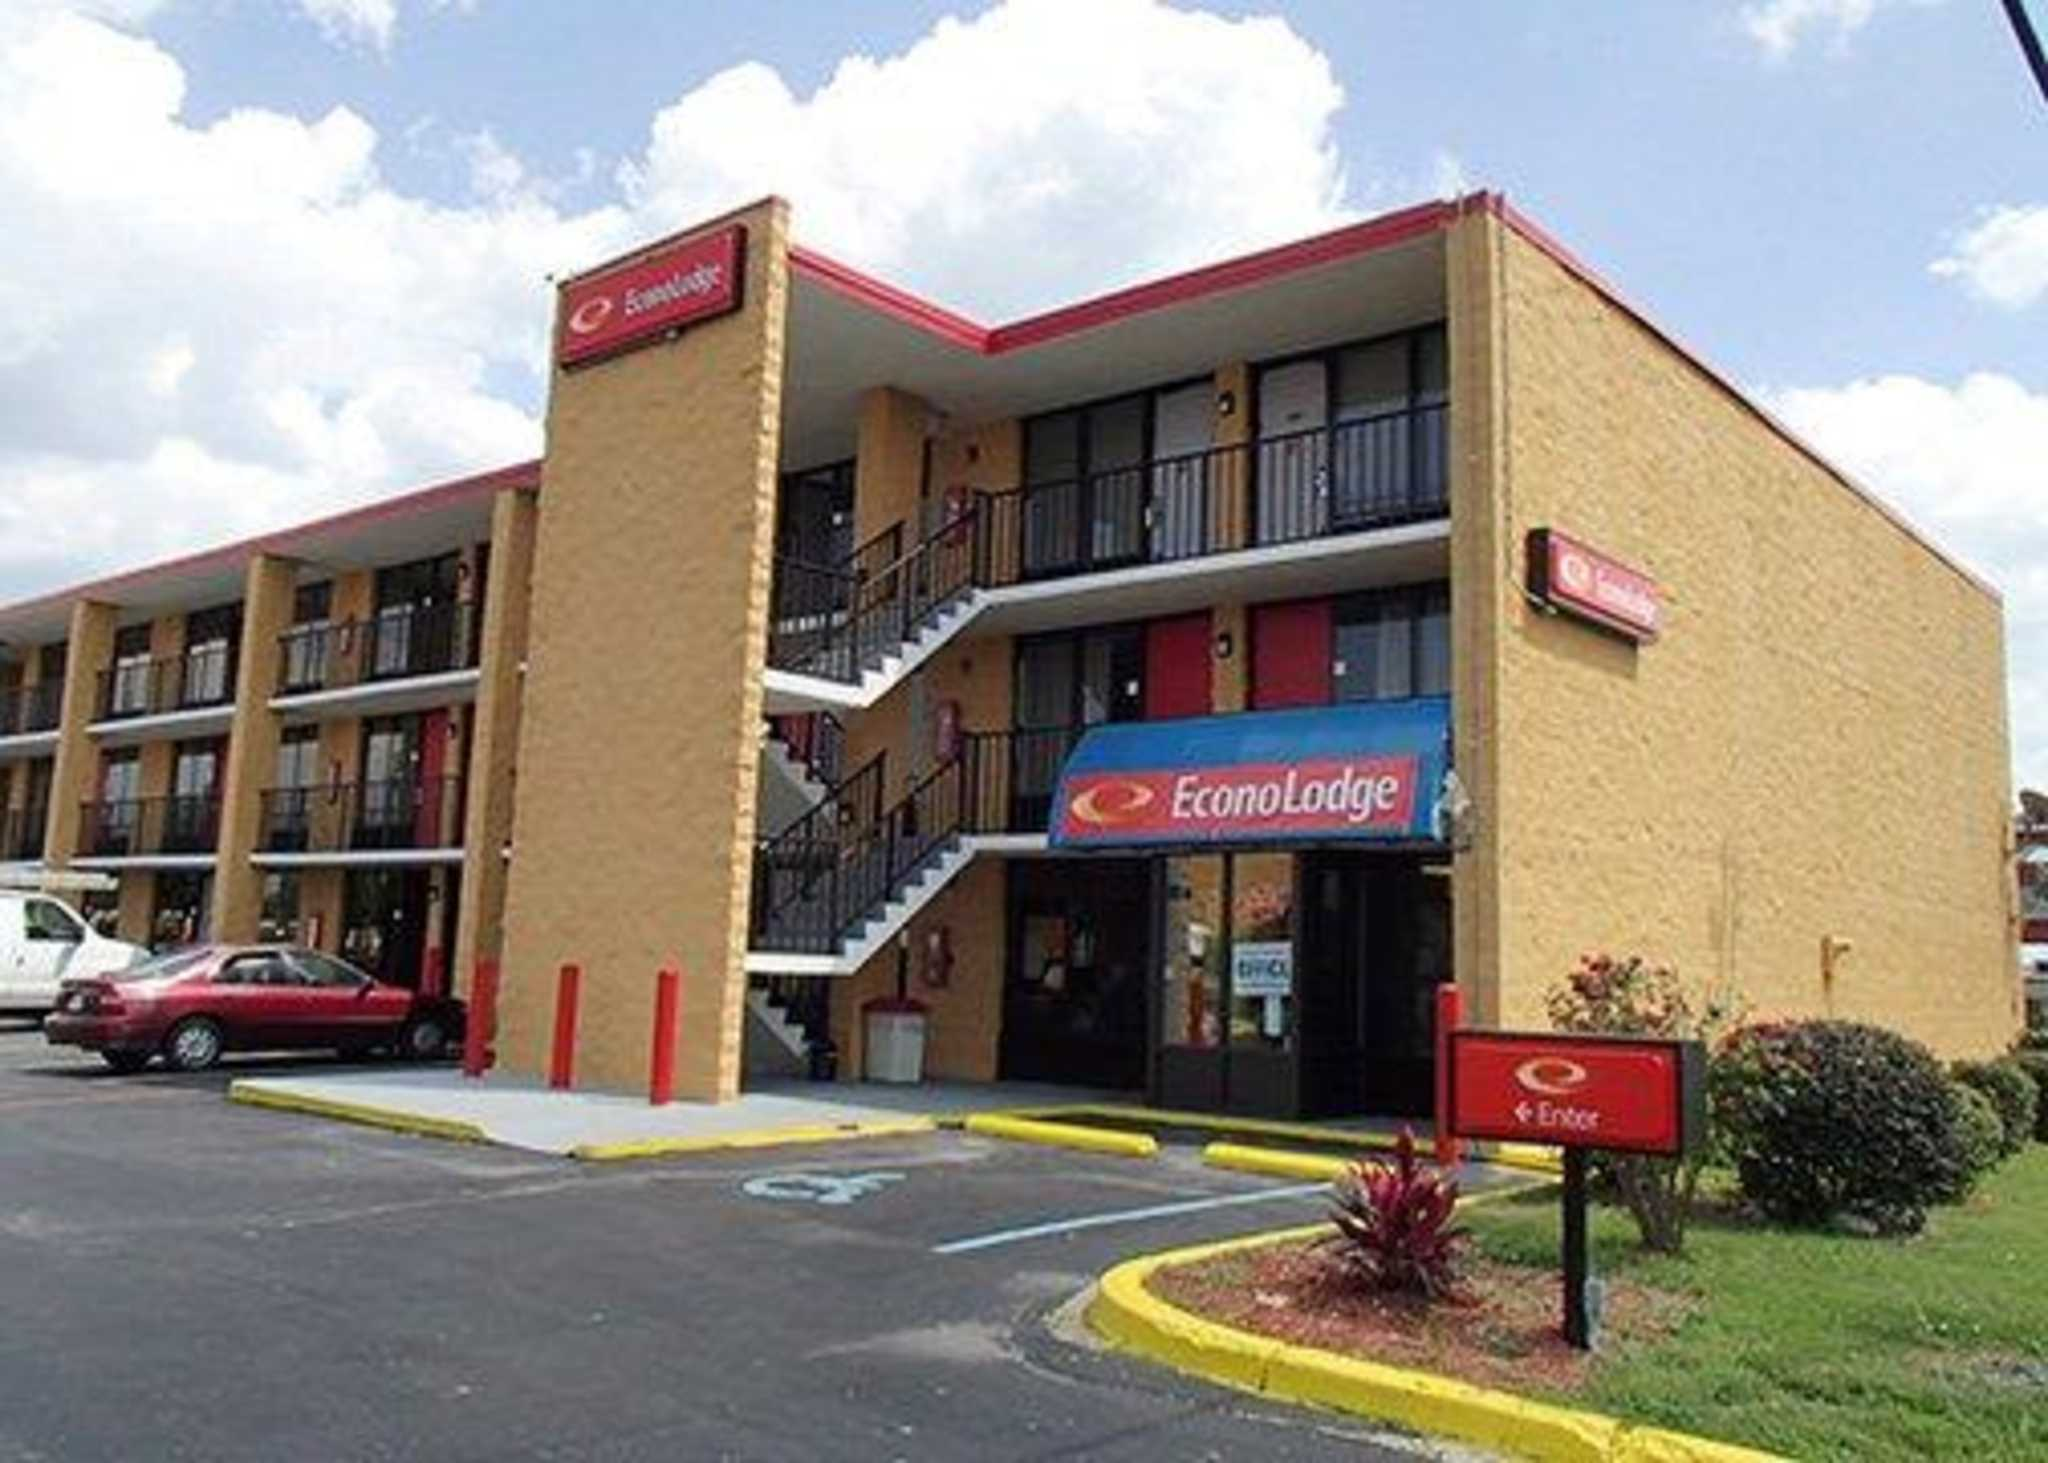 econo lodge coupons rock hill sc near me 8coupons. Black Bedroom Furniture Sets. Home Design Ideas